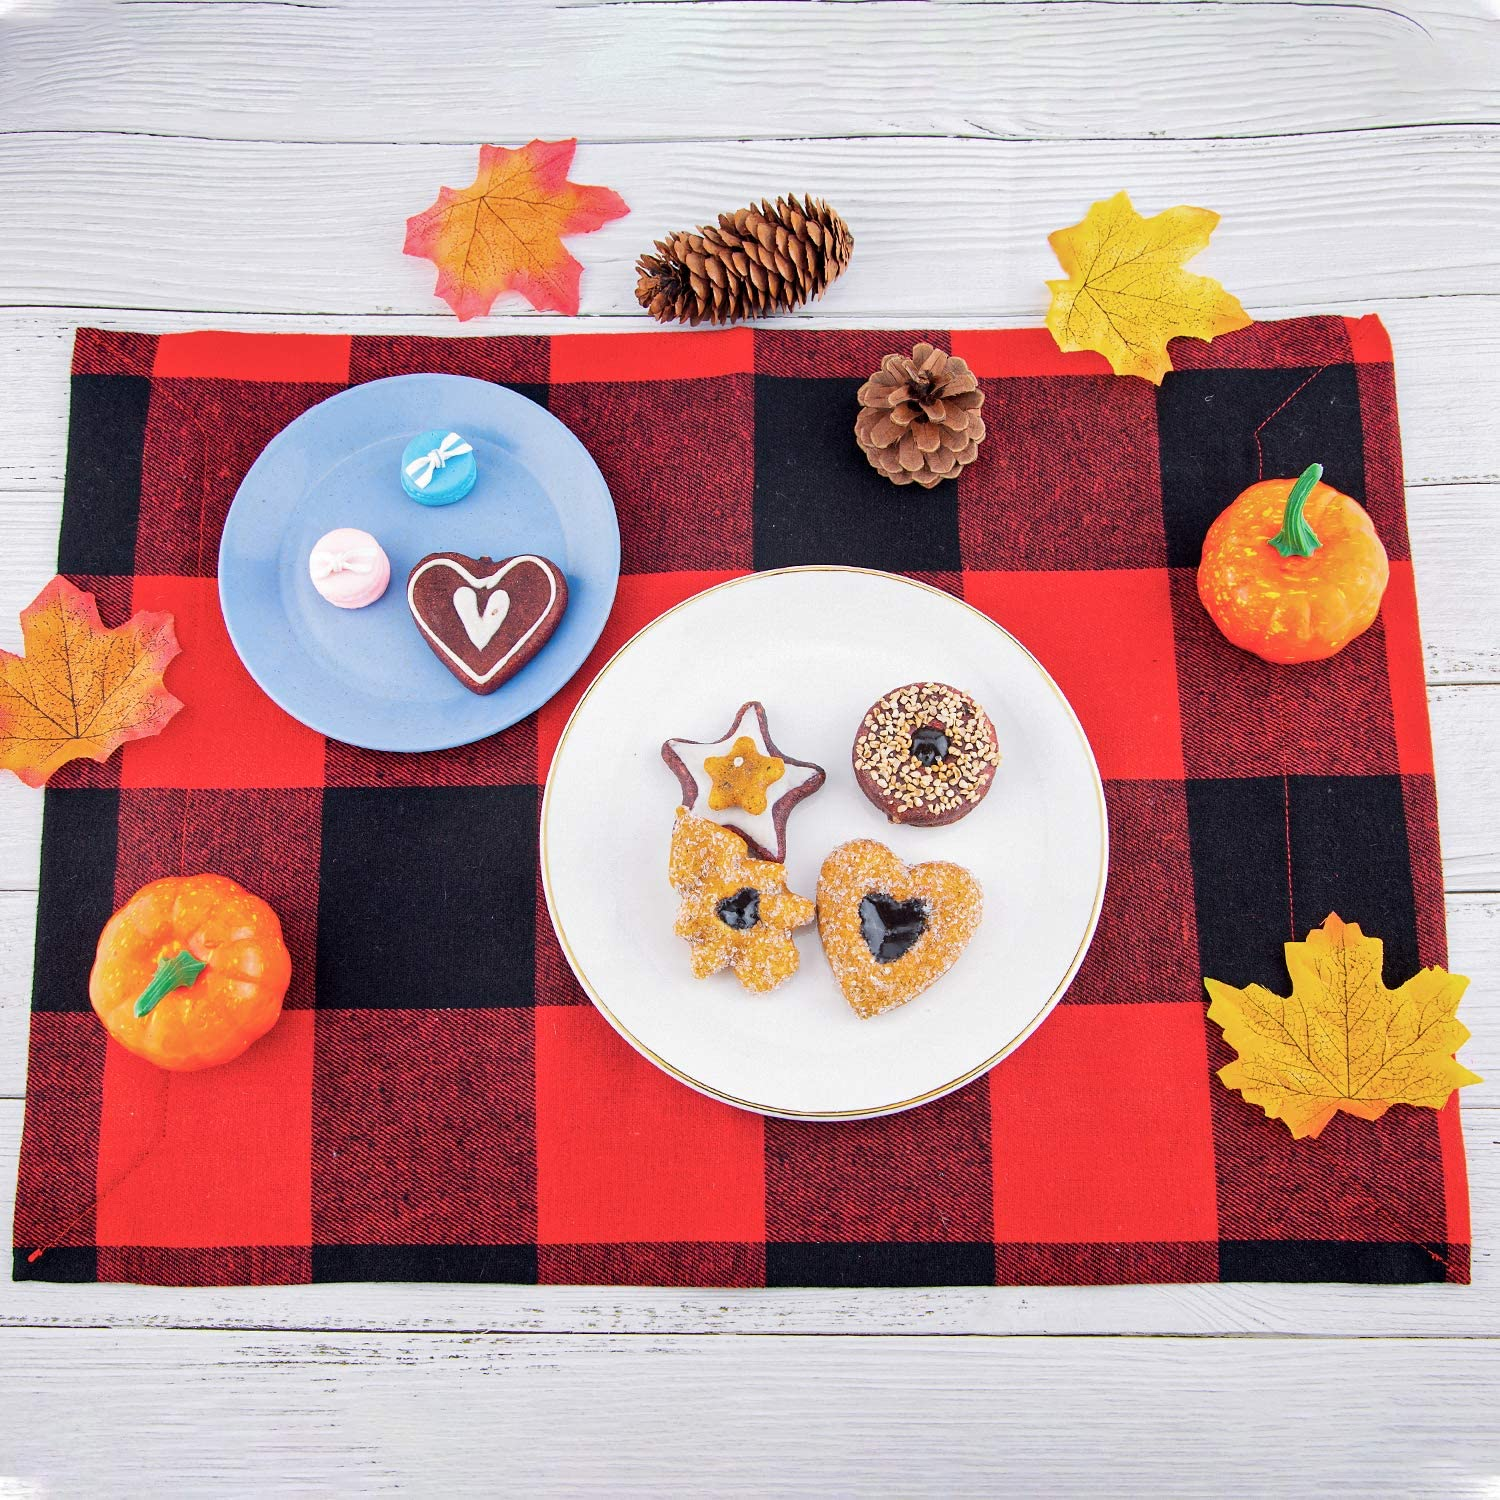 LUTER 6pcs Buffalo Check Placemats Christmas Double-Sided Placemats Red/&Black Plaid Table Mat for Table Decorations Christmas Decor Supplies 47/×32cm//18.5/×12.5inch